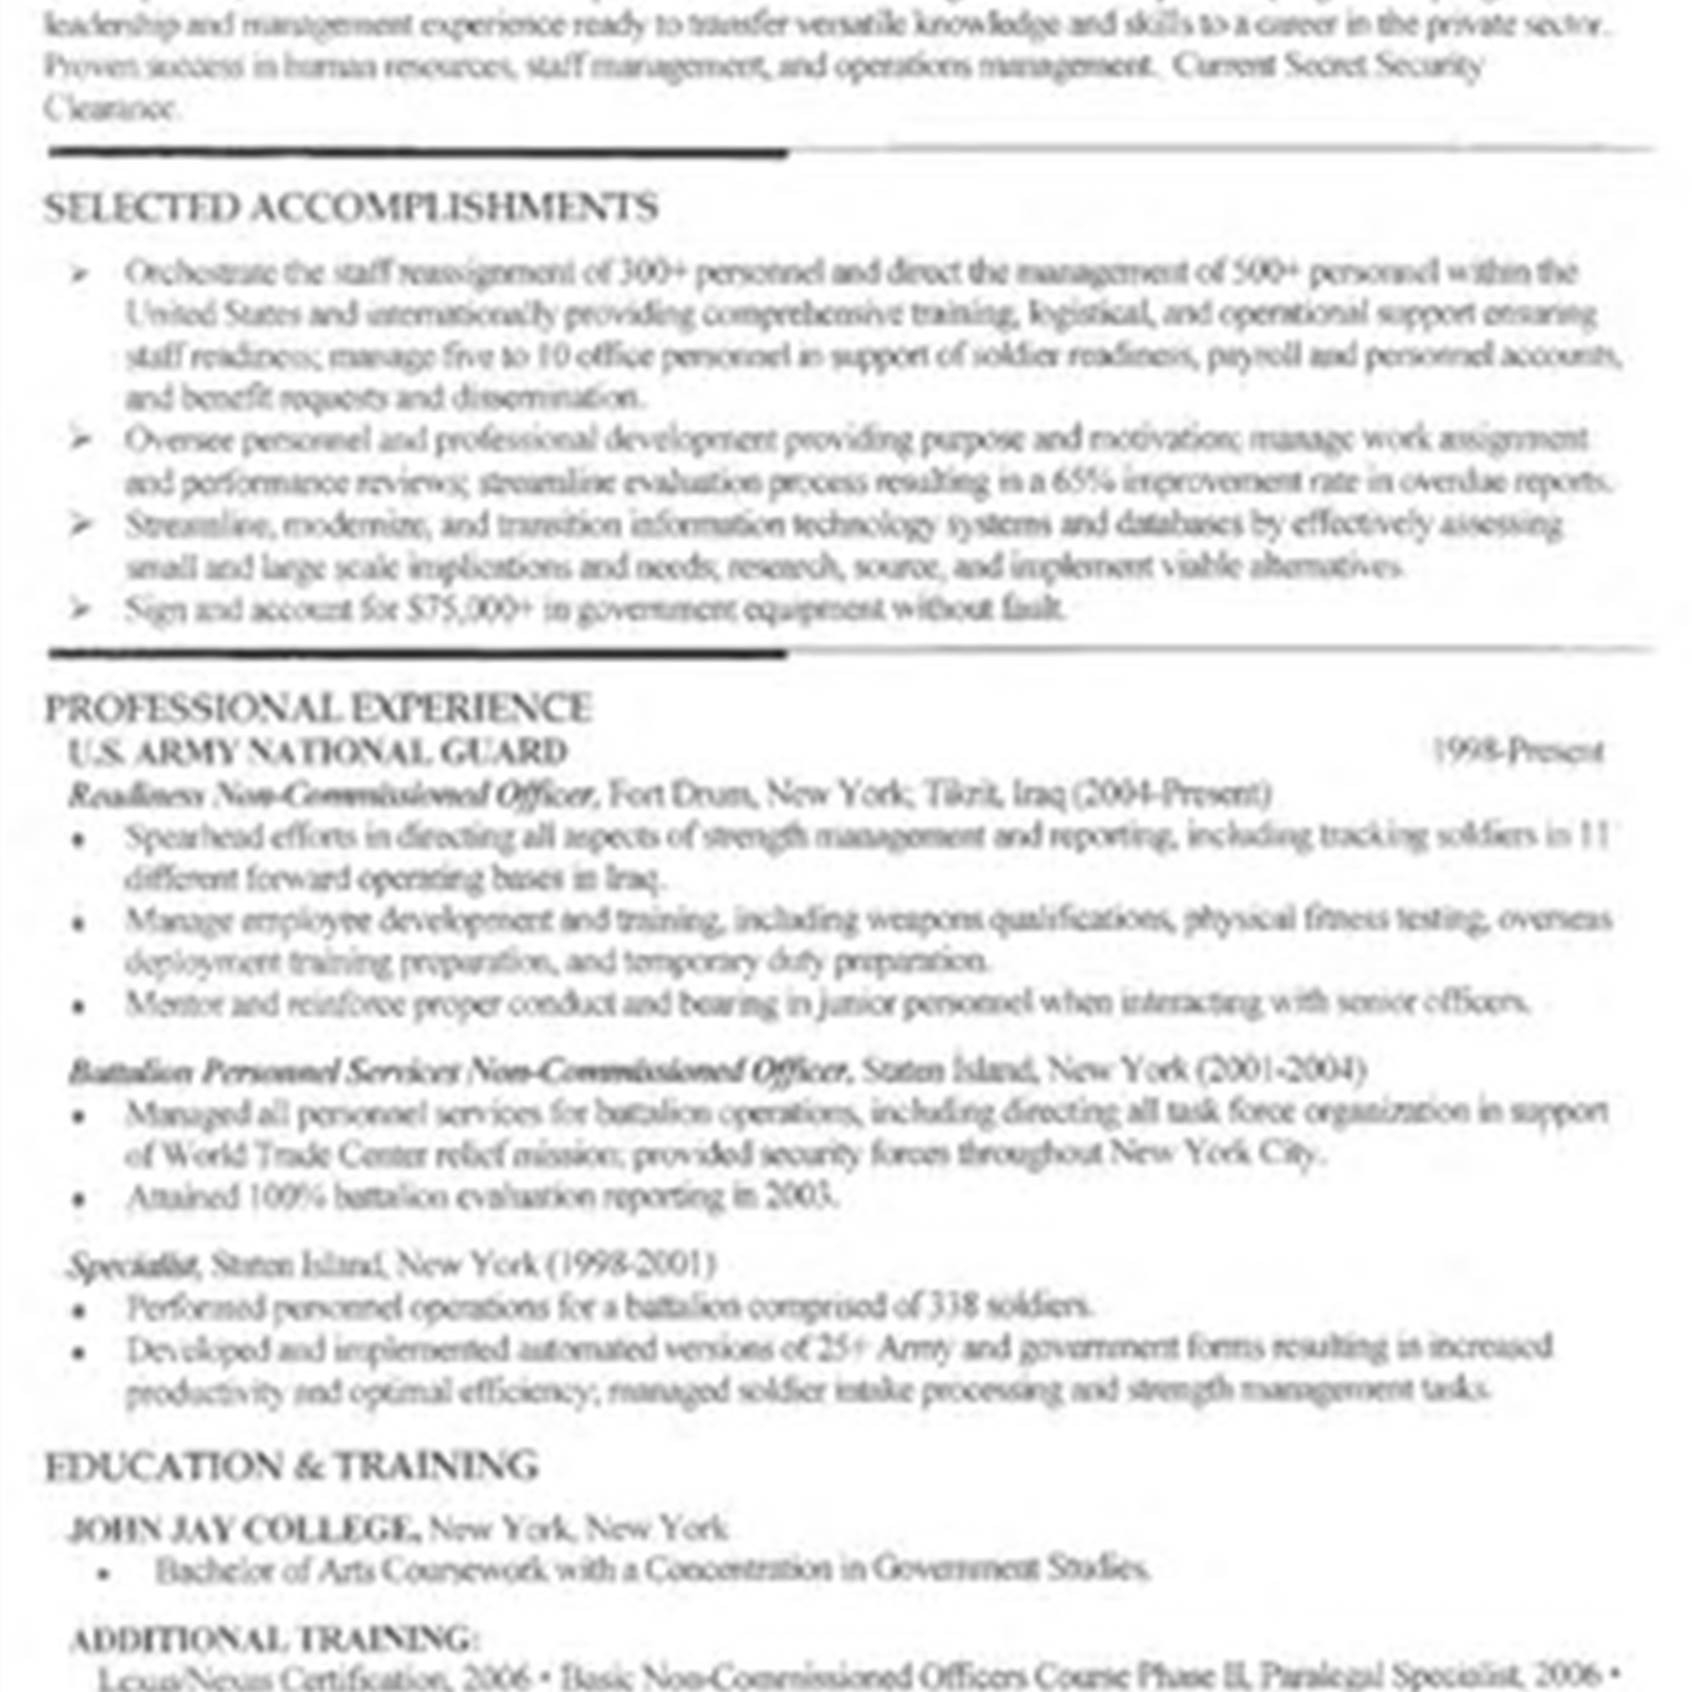 Executive Resume Writing Service - Professional Resume and Cover Letter Writing Services List Resume